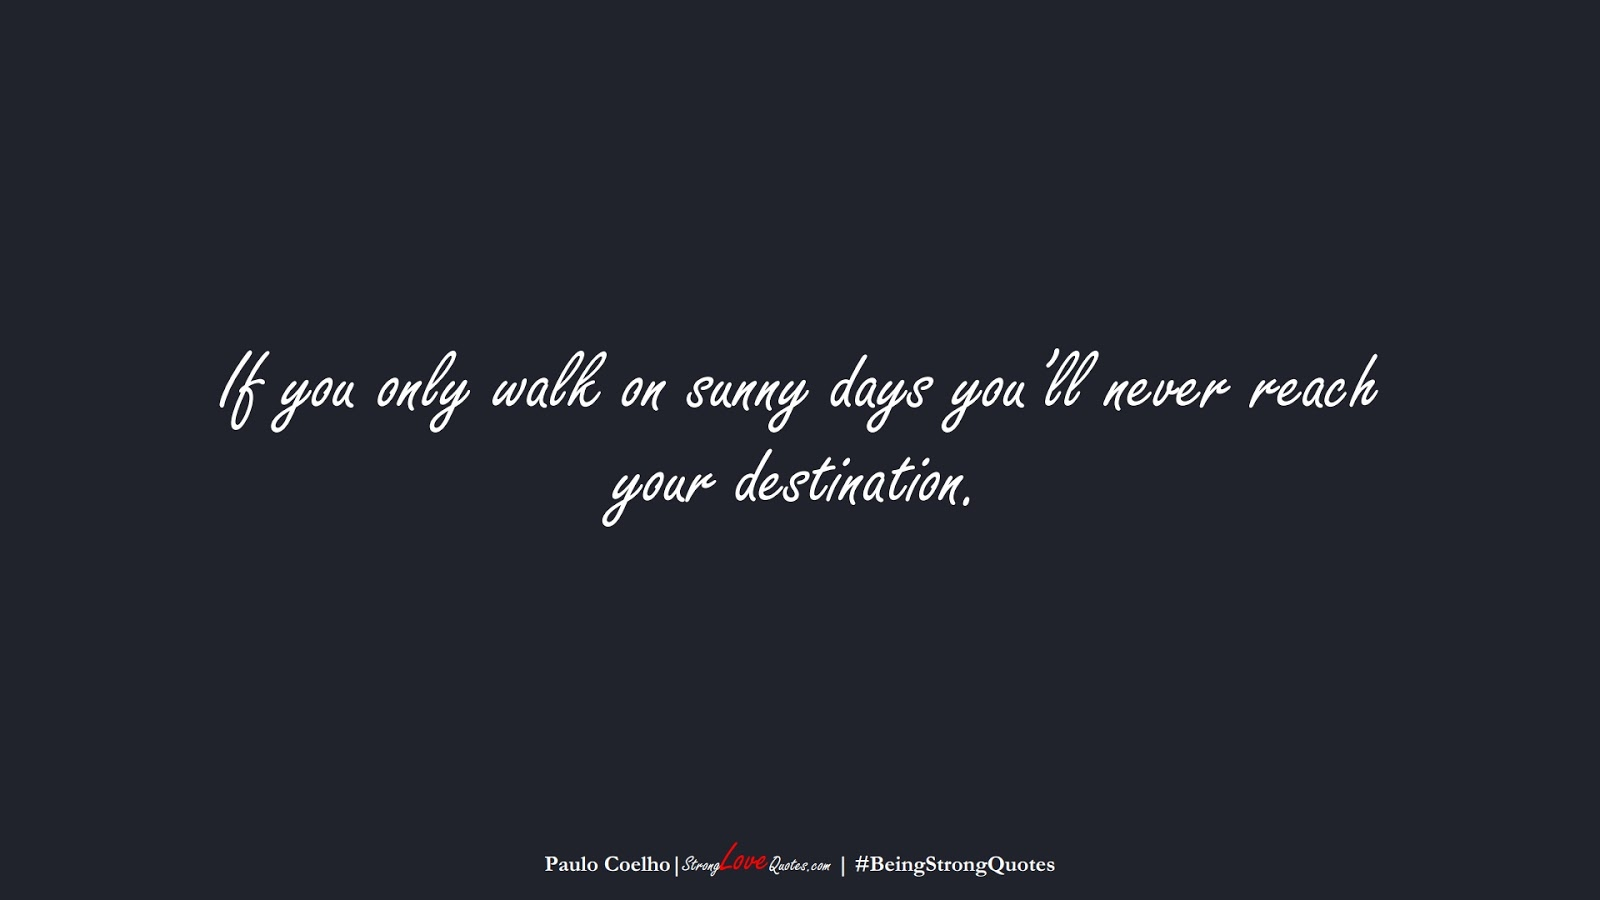 If you only walk on sunny days you'll never reach your destination. (Paulo Coelho);  #BeingStrongQuotes